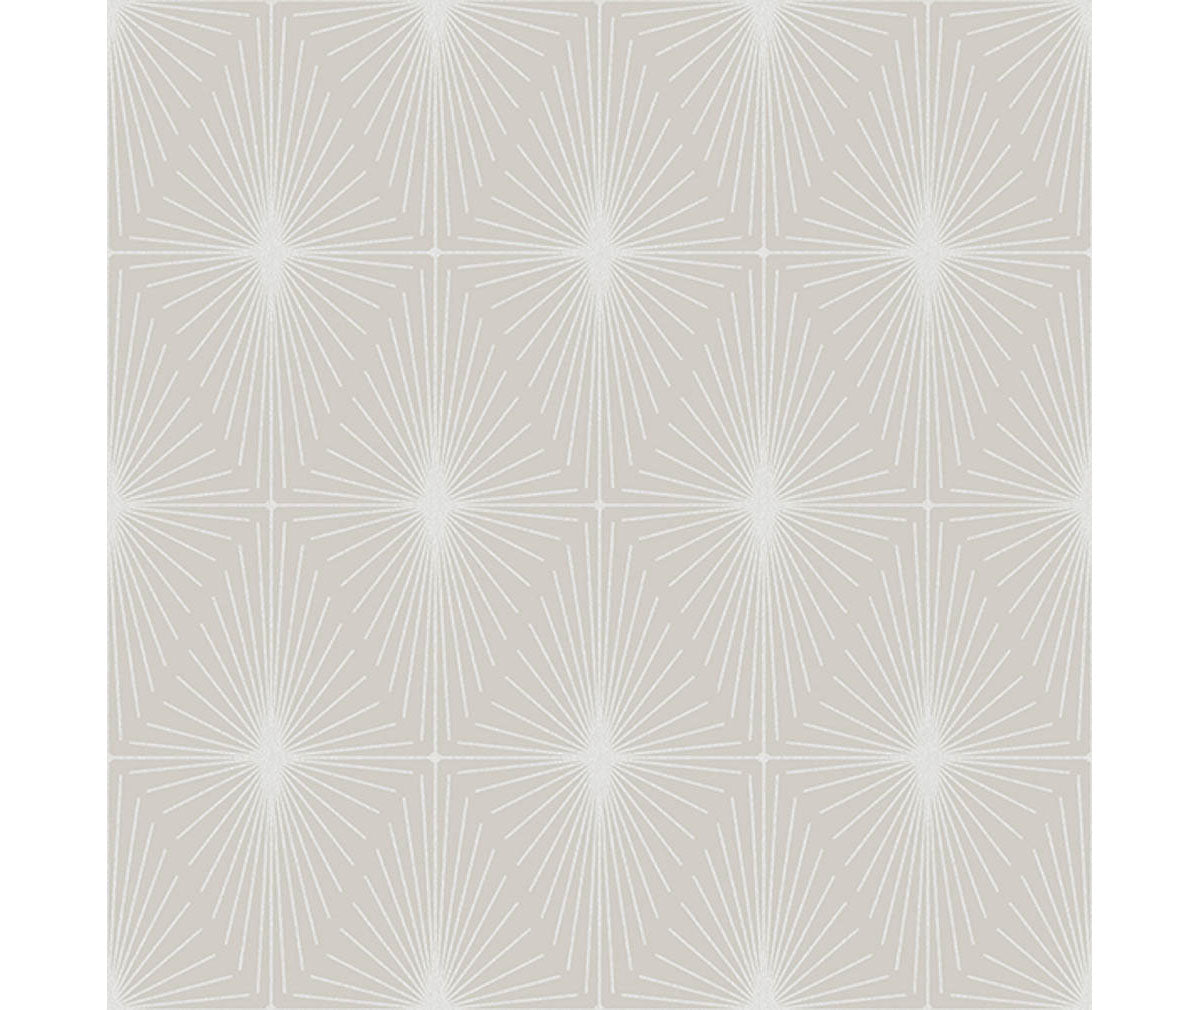 Starlight Neutral Diamond Wallpaper available at Barrydowne Paint